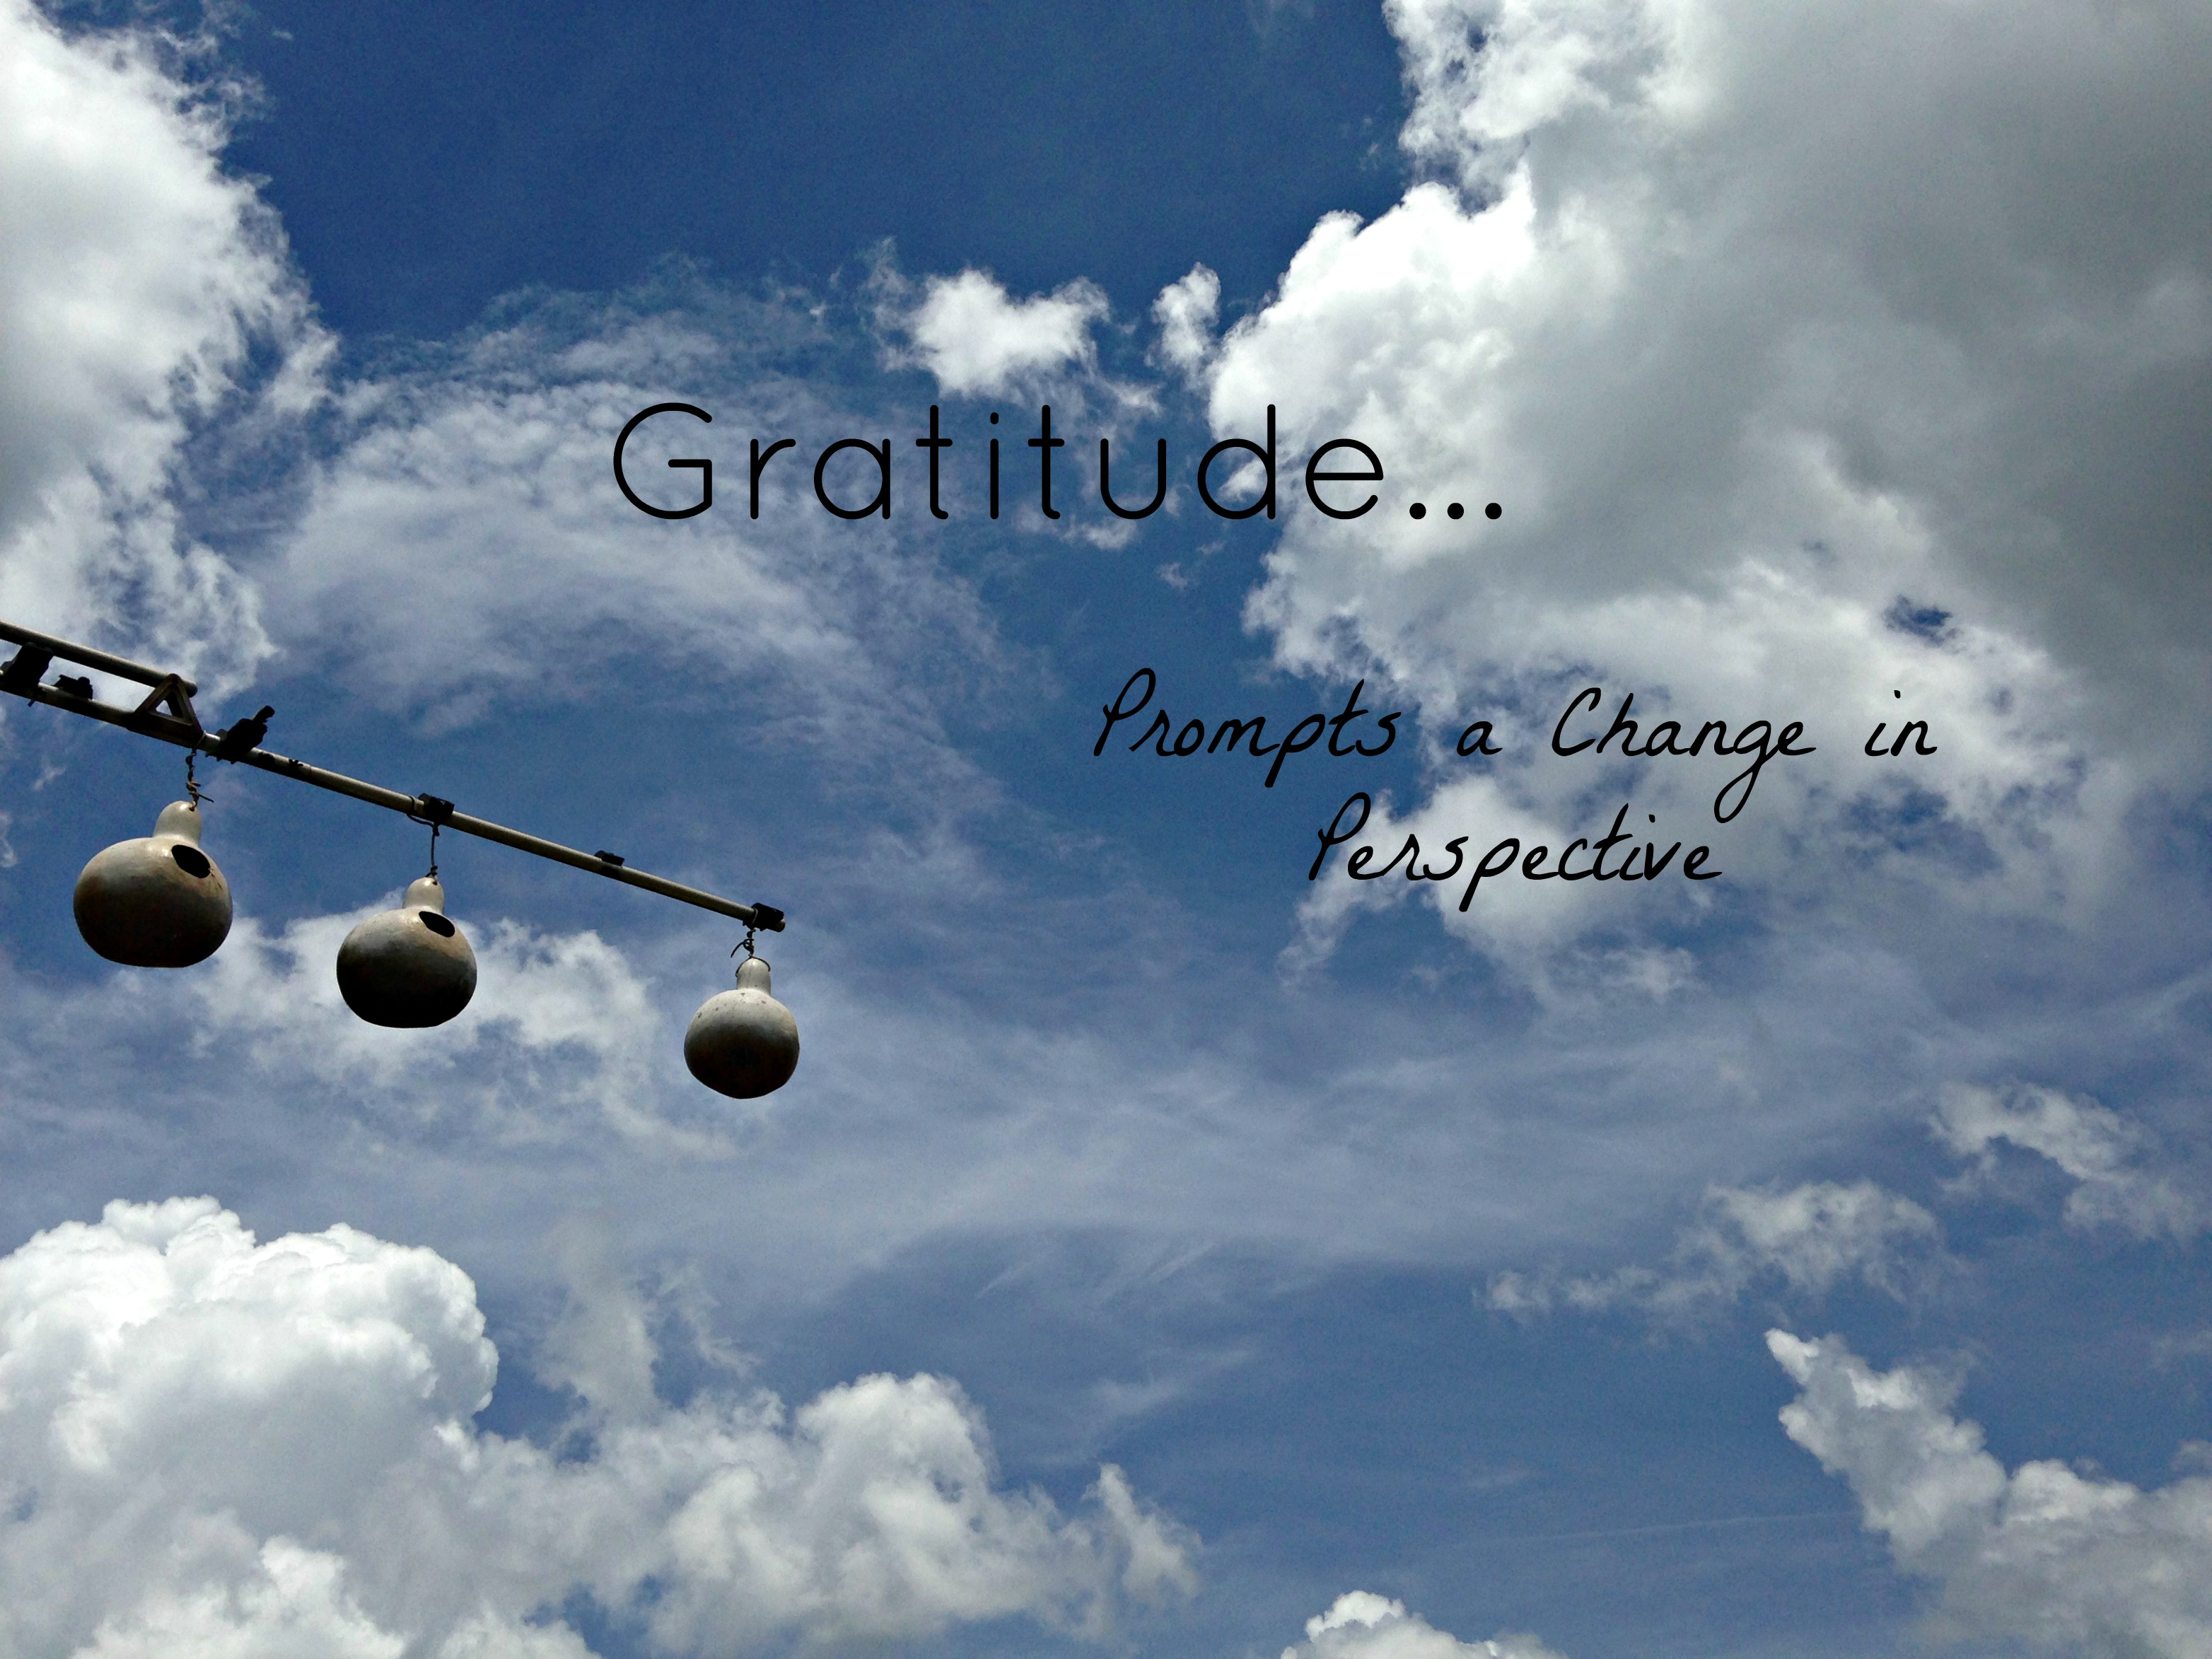 Gratitude Prompts a Change in Perspective